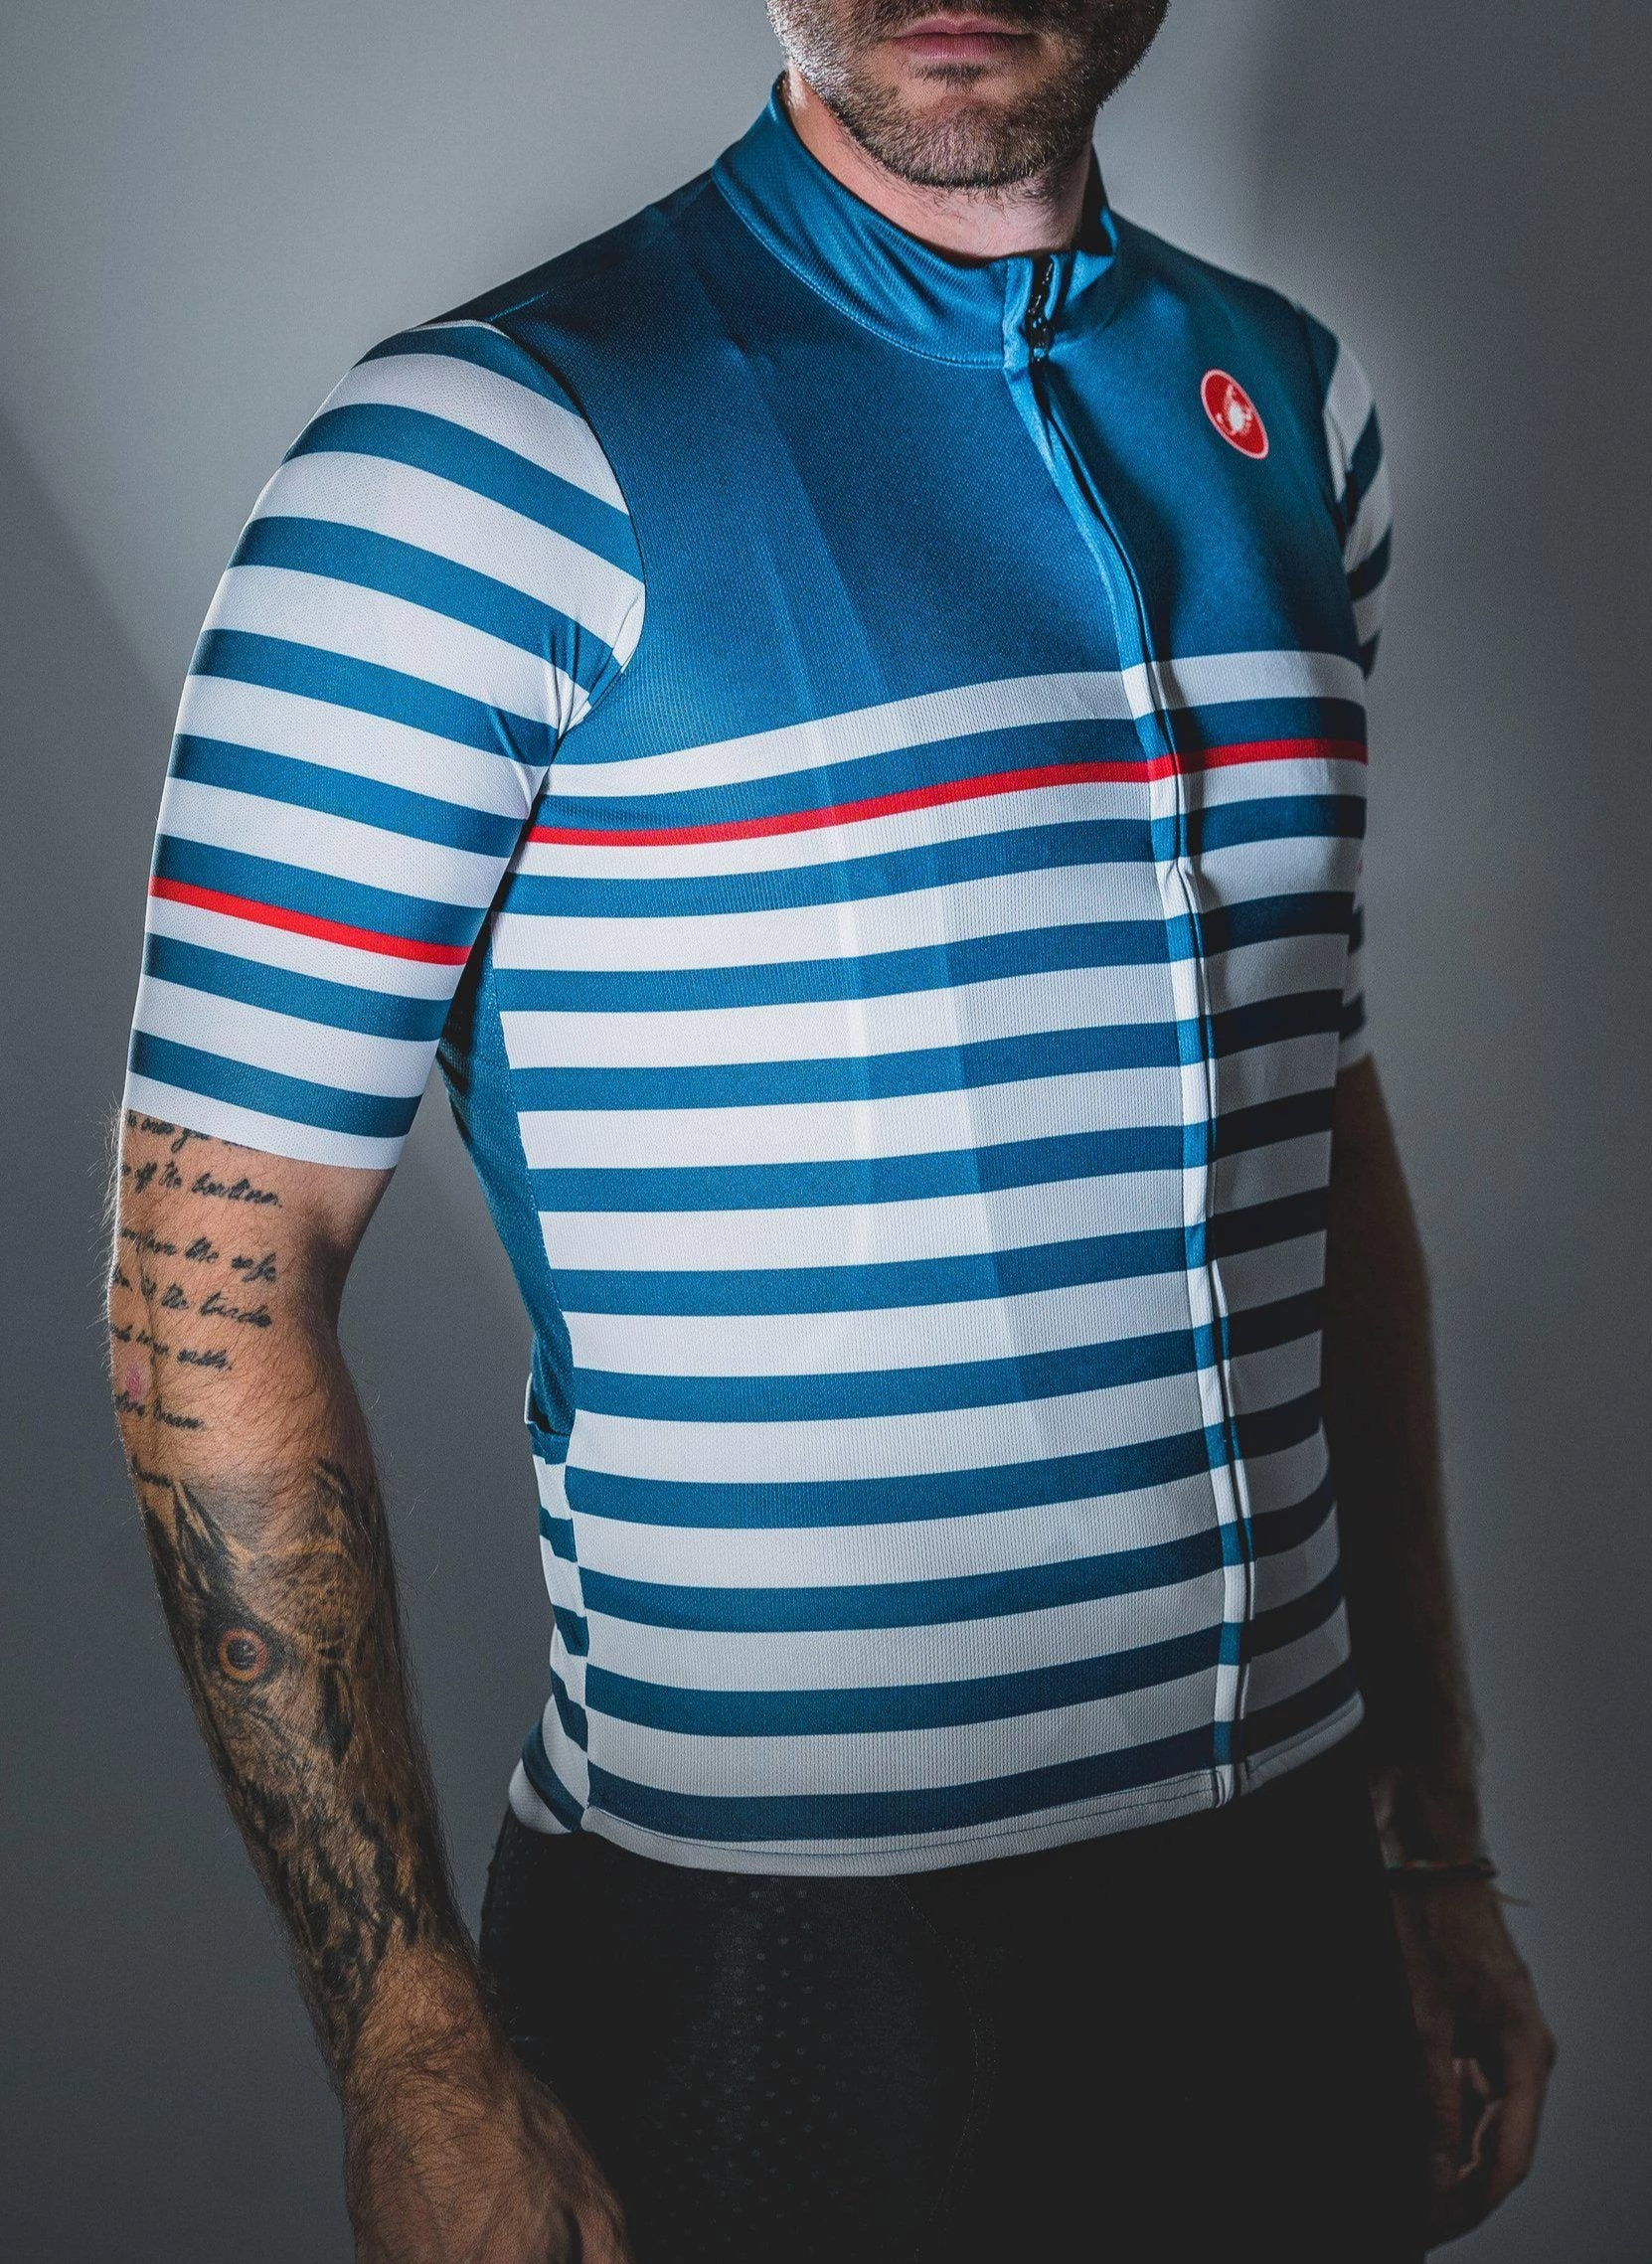 Castelli-Castelli World Champs Squadra Jersey - Sailor-Sailor-L-CS4300412A397024-saddleback-elite-performance-cycling